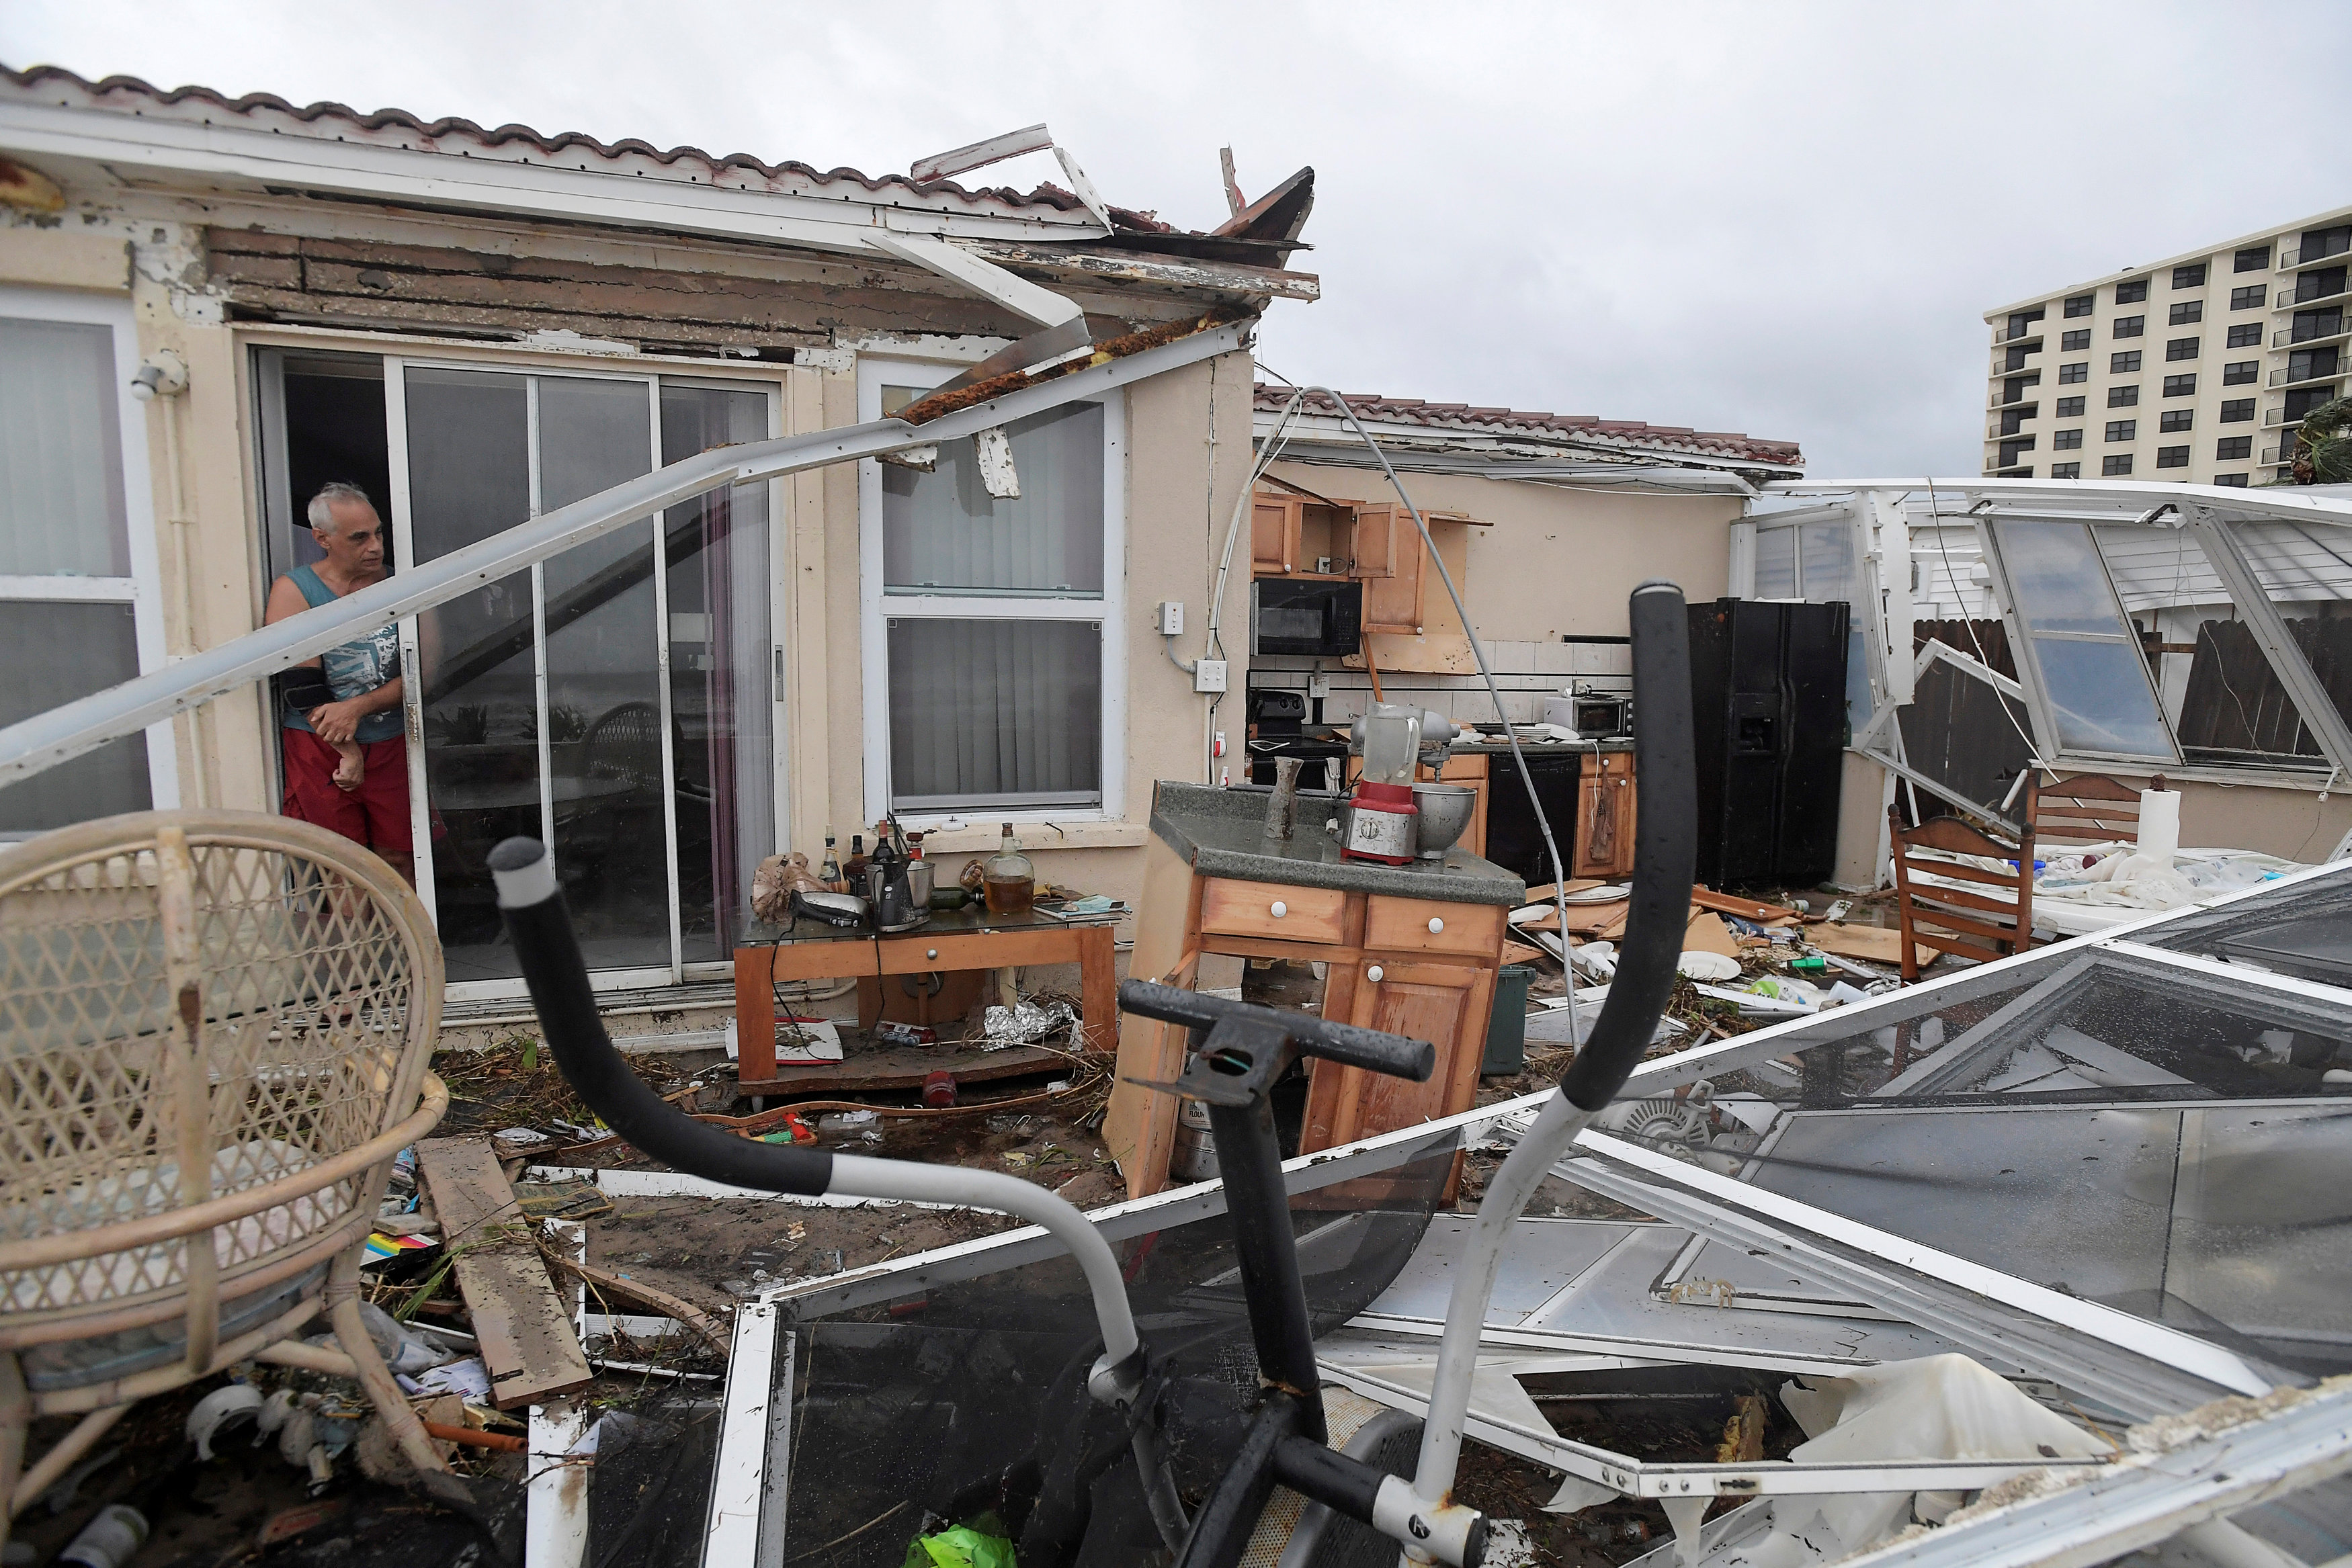 Homeowner Joe Lovece surveys the damage to the kitchen at the back of his oceanfront home after the eye of Hurricane Matthew passed Ormond Beach, Florida, U.S. October 7, 2016. Lovece rode out the storm as waves took away the room at the back of his home.  REUTERS/Phelan Ebenhack     TPX IMAGES OF THE DAY